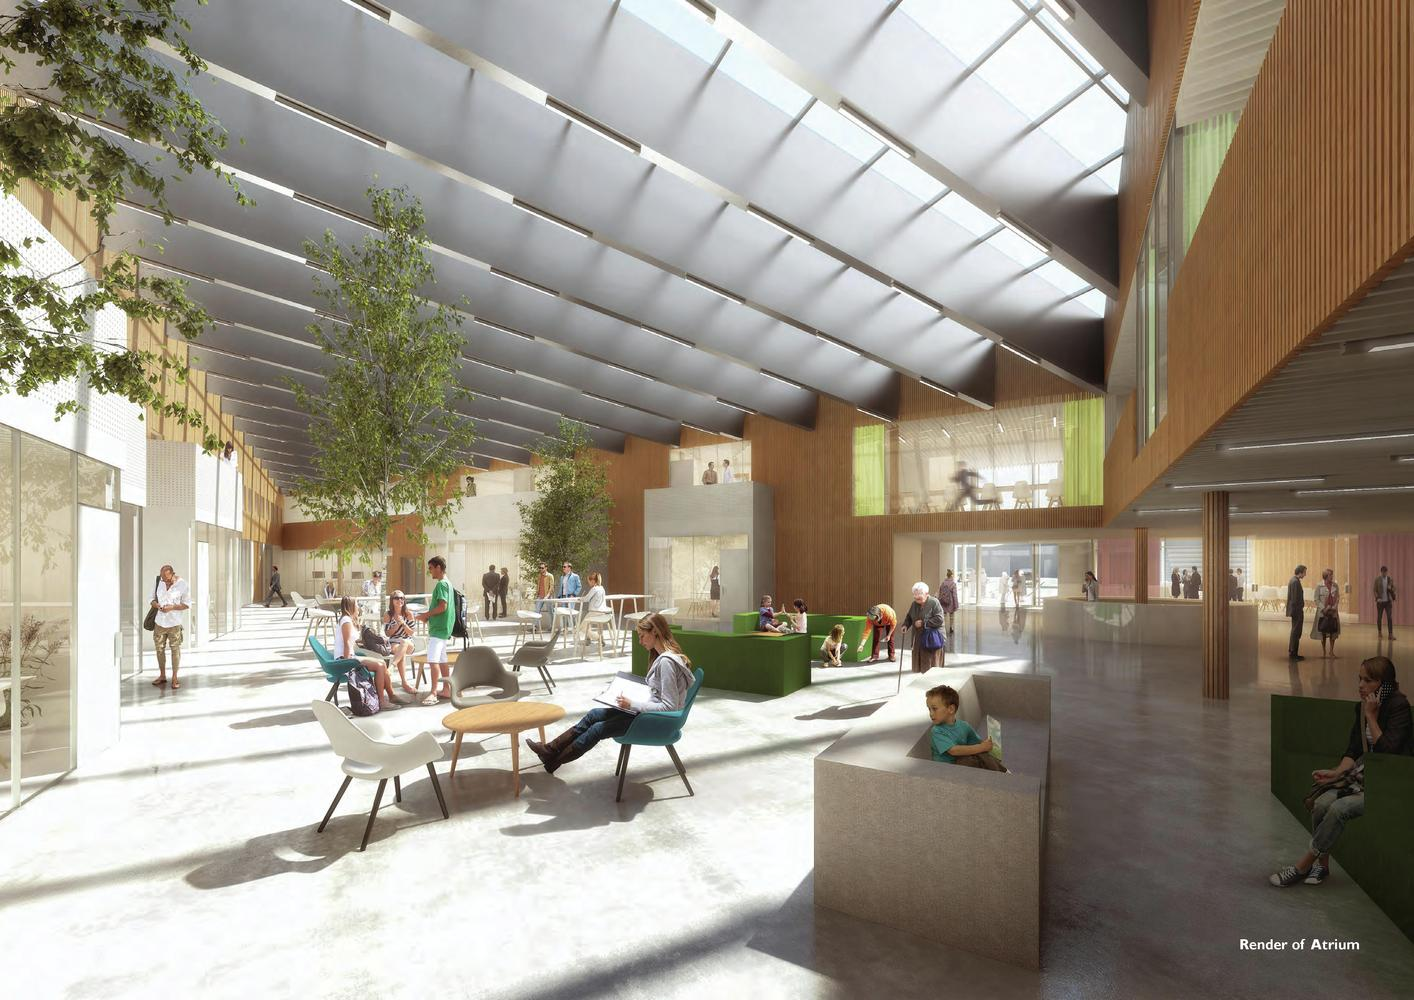 NORD Architects Wins Contract For New Furesø City Hall,Interior Rendered  View. Image Courtesy